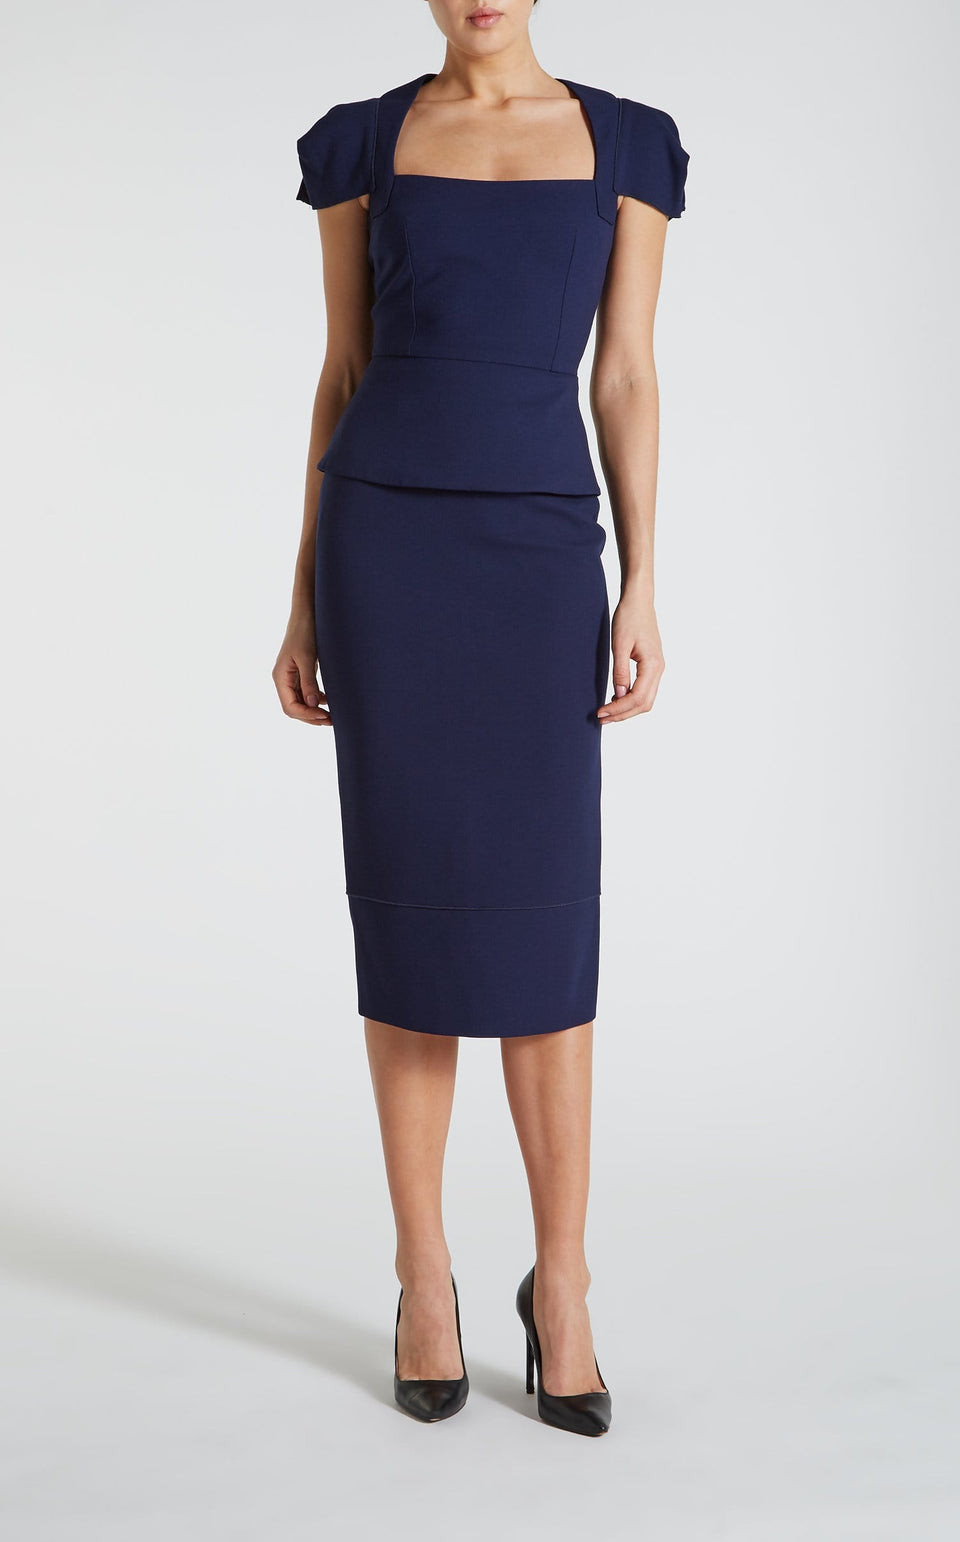 Galaxy Skirt In Navy from Roland Mouret